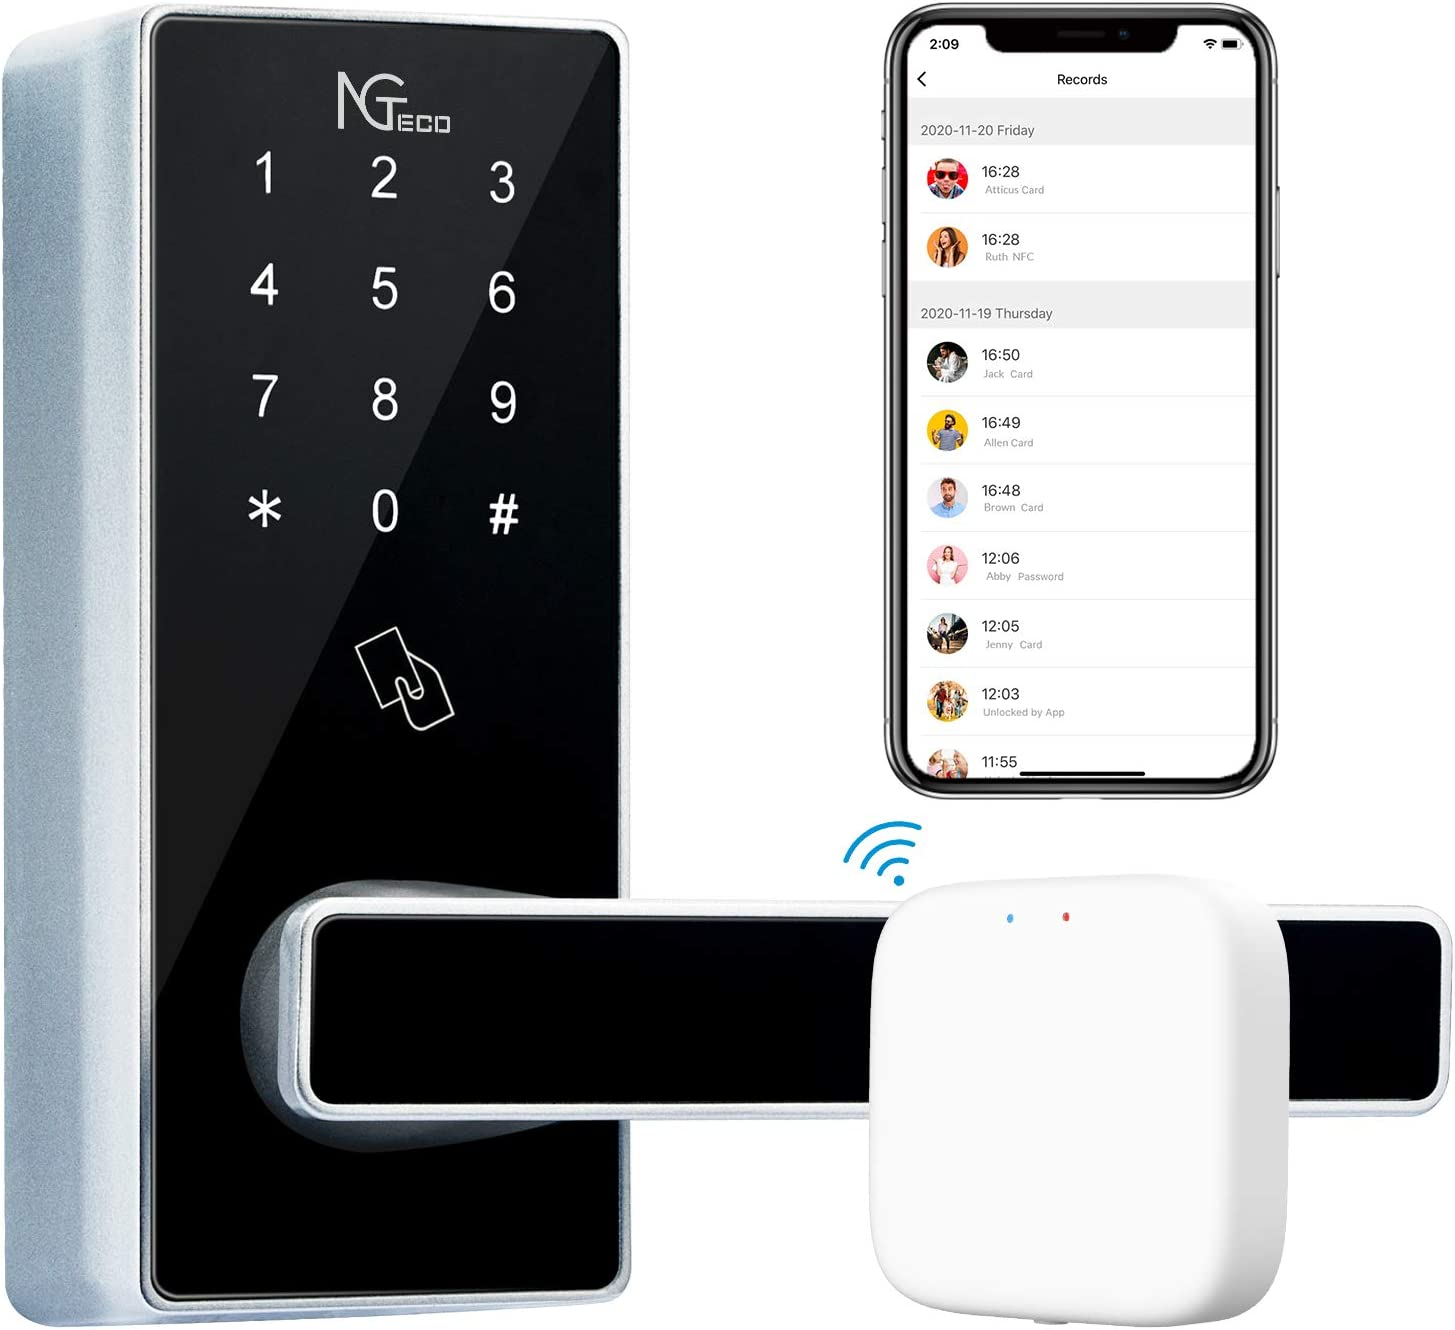 NGTeco WiFi Smart Lock Keyless Entry Door Lock Digital Electronic Lock with Gateway, Waterproof Lever Lock Deadbolt Touchscreen Keypad 5-in-1 NFC APP Code Keys and Cards for Rental House,Zinc Alloy